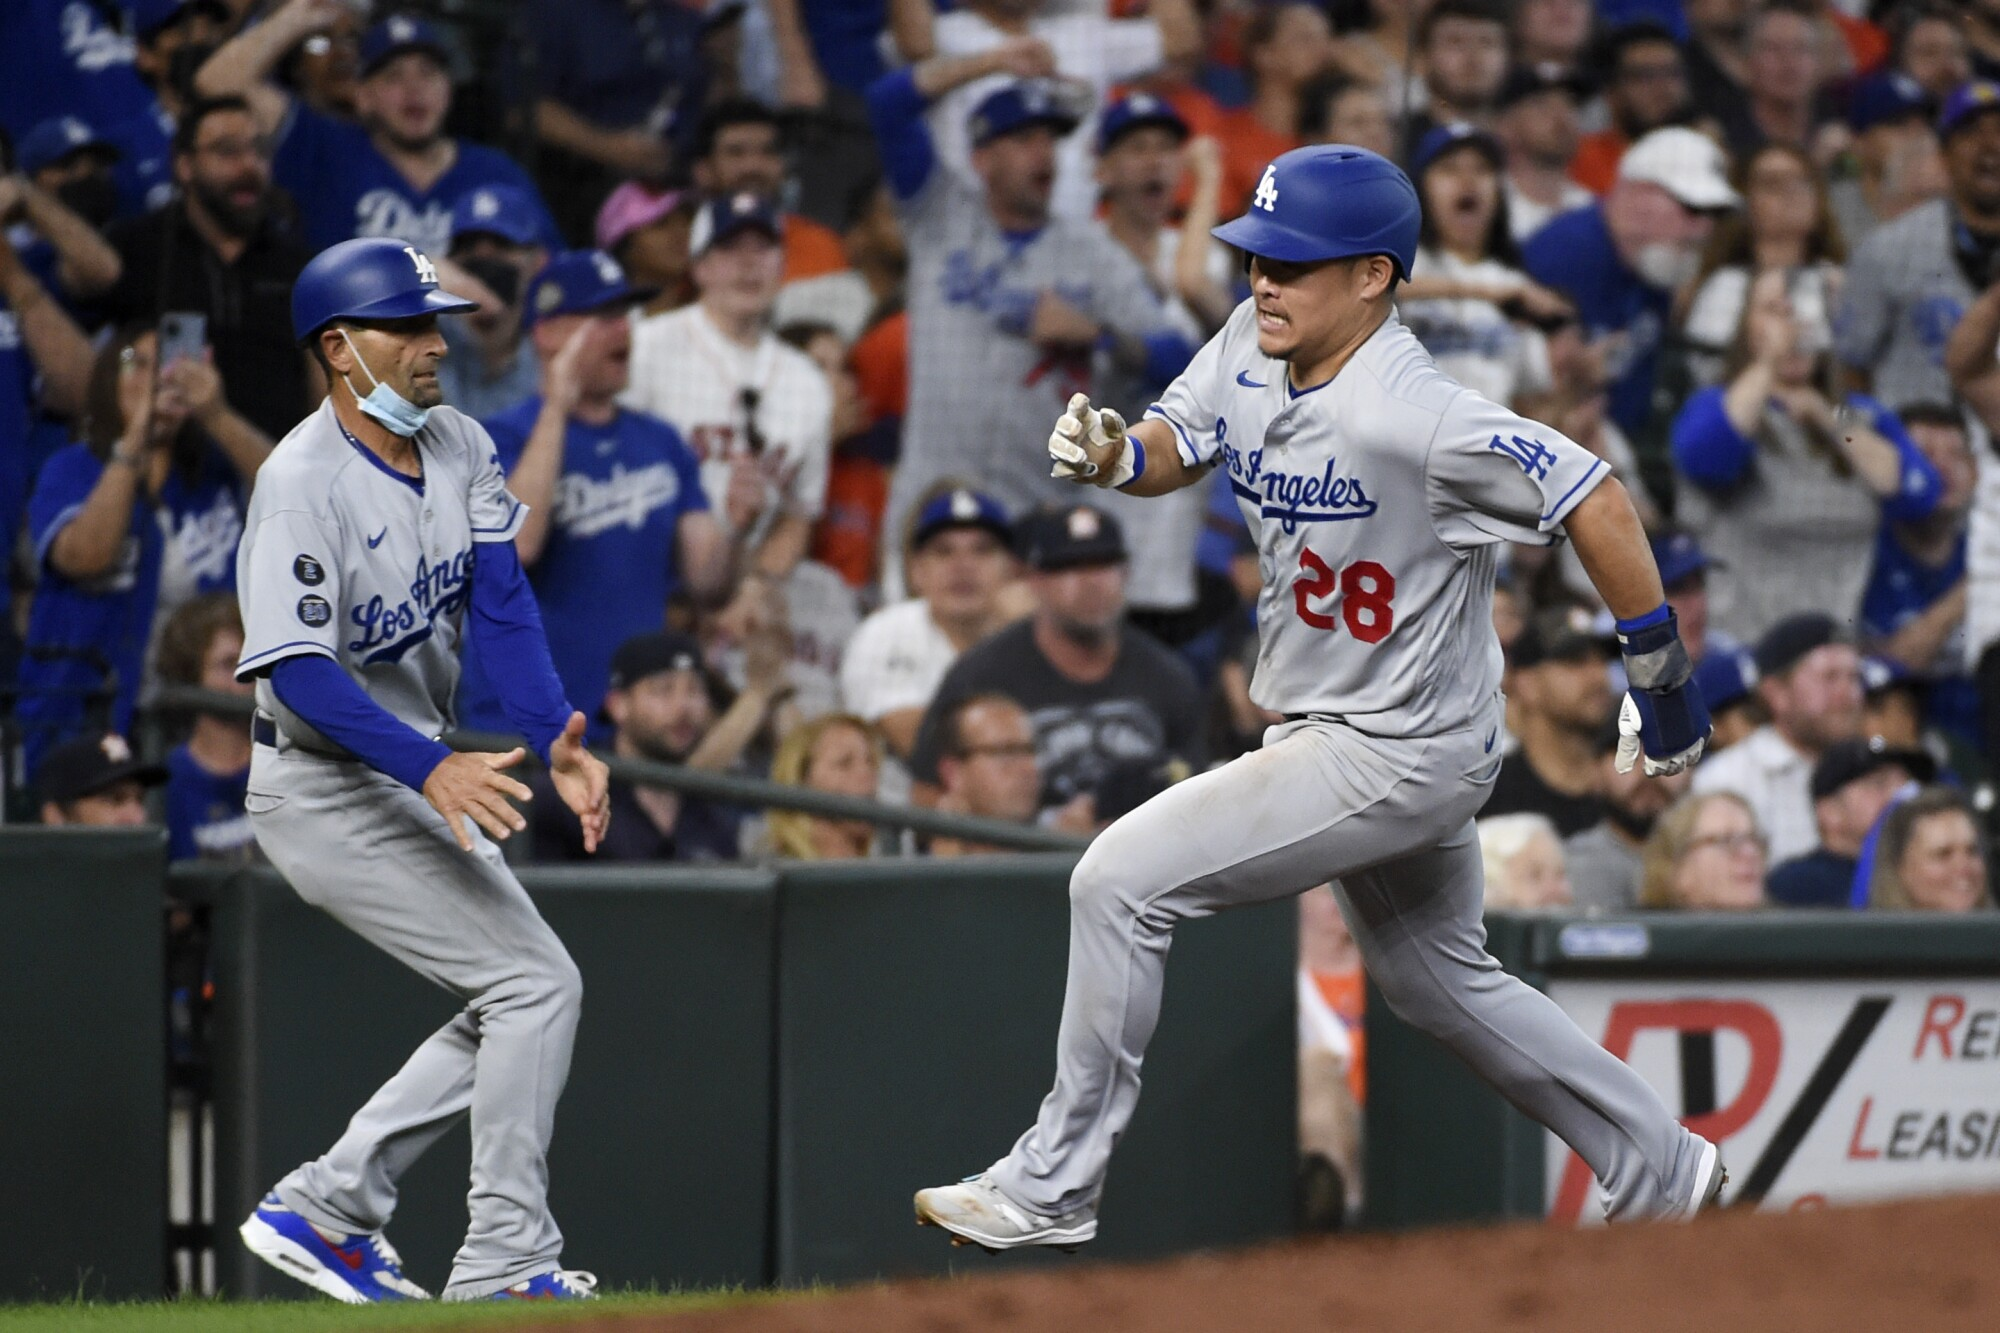 Yosi Tsutsugo scores for the Dodgers in the third inning.